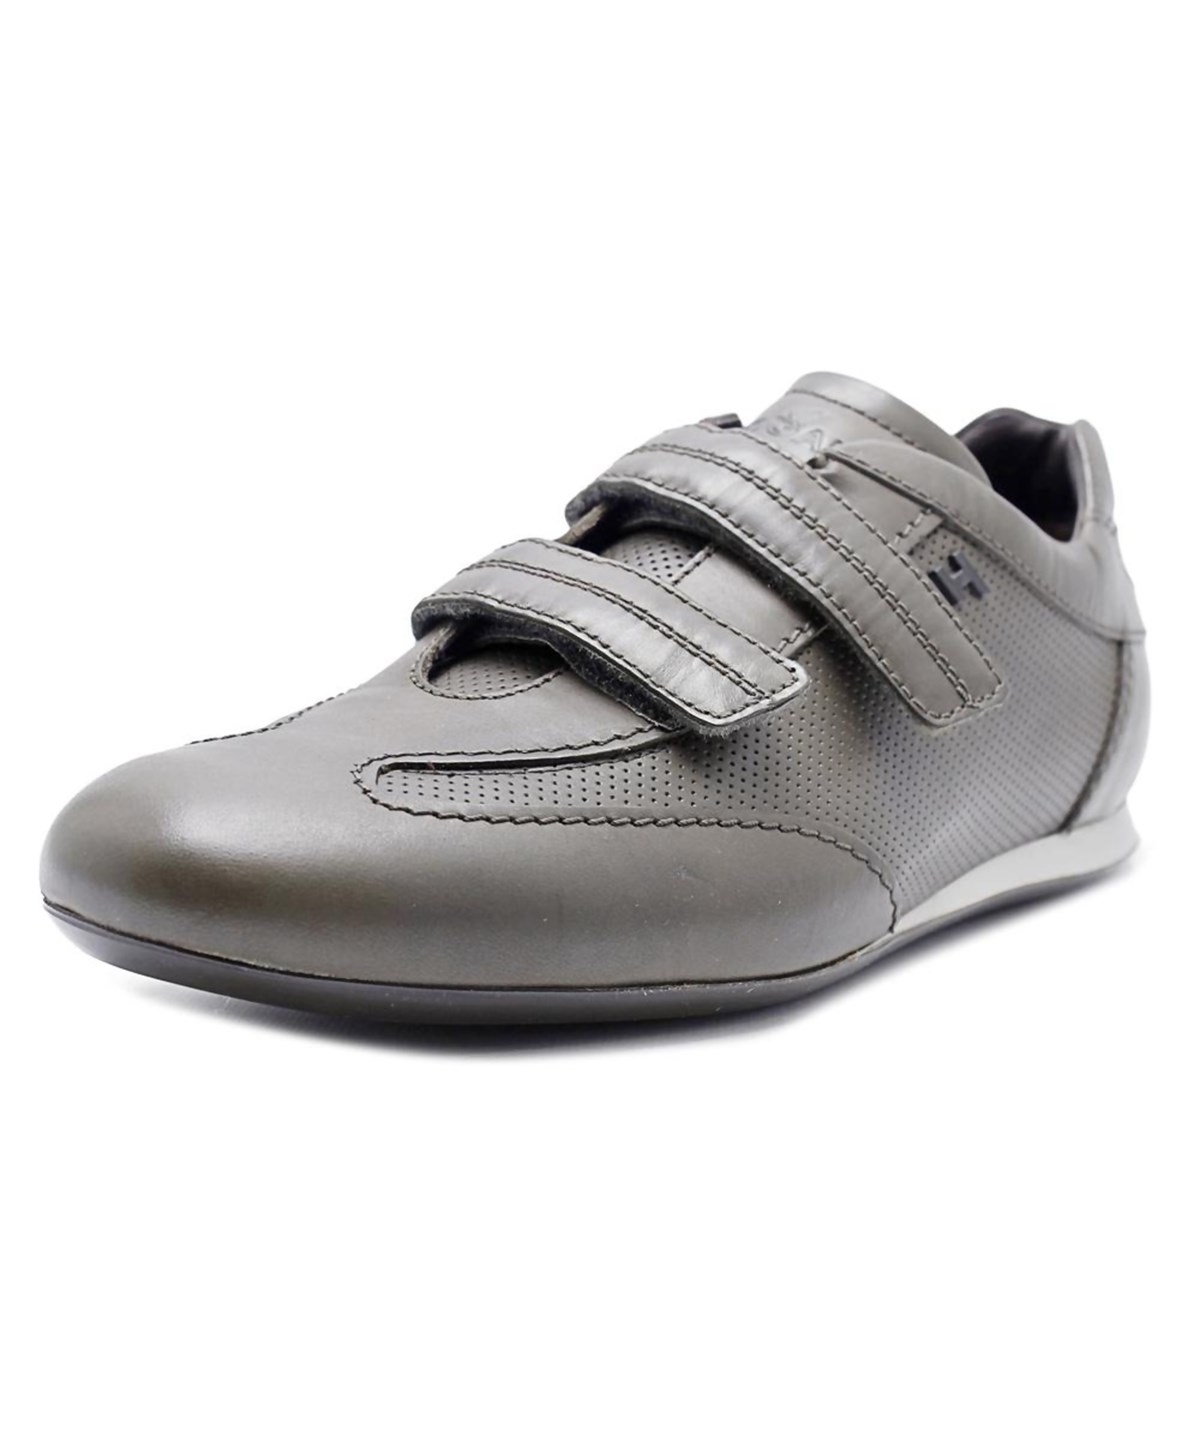 taille 40 04f6b 604e0 Hogan Olympia Mod Strap H Iniettata Round Toe Synthetic Sneakers' in Grey